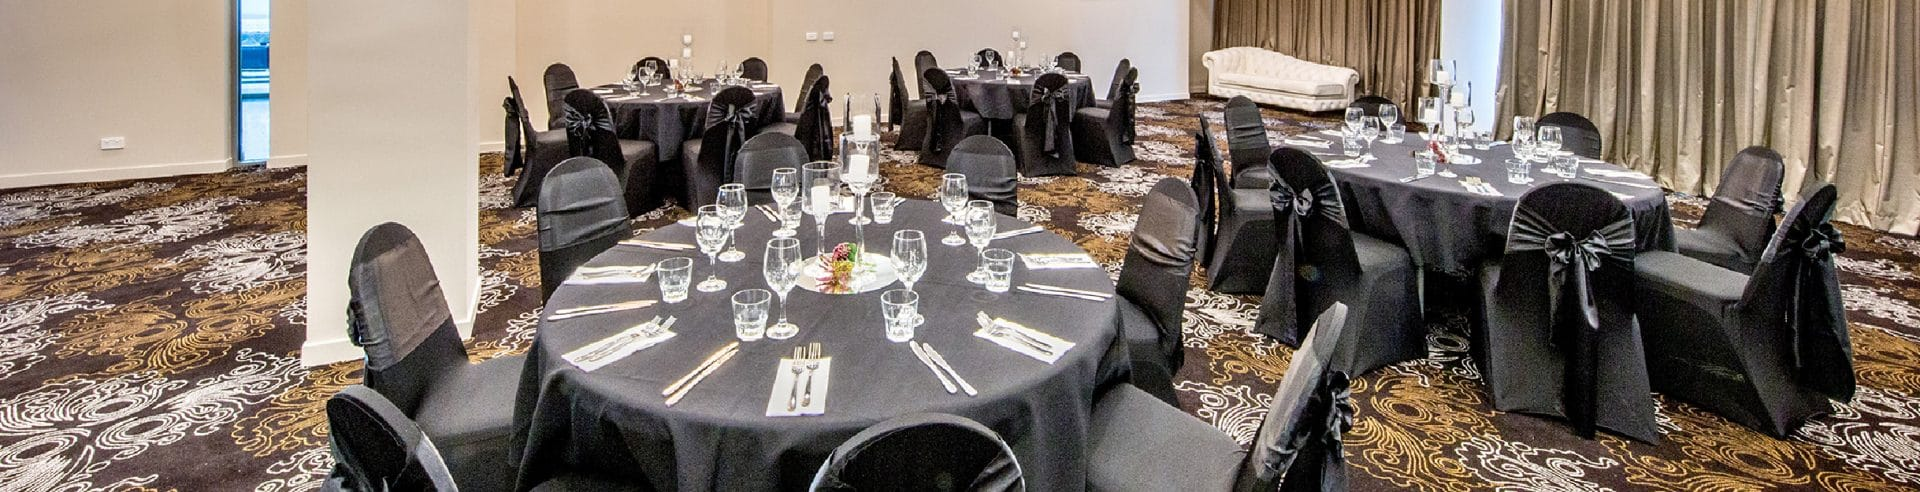 Royal Mail Room Private Function Room & Events at Tingalpa Hotel